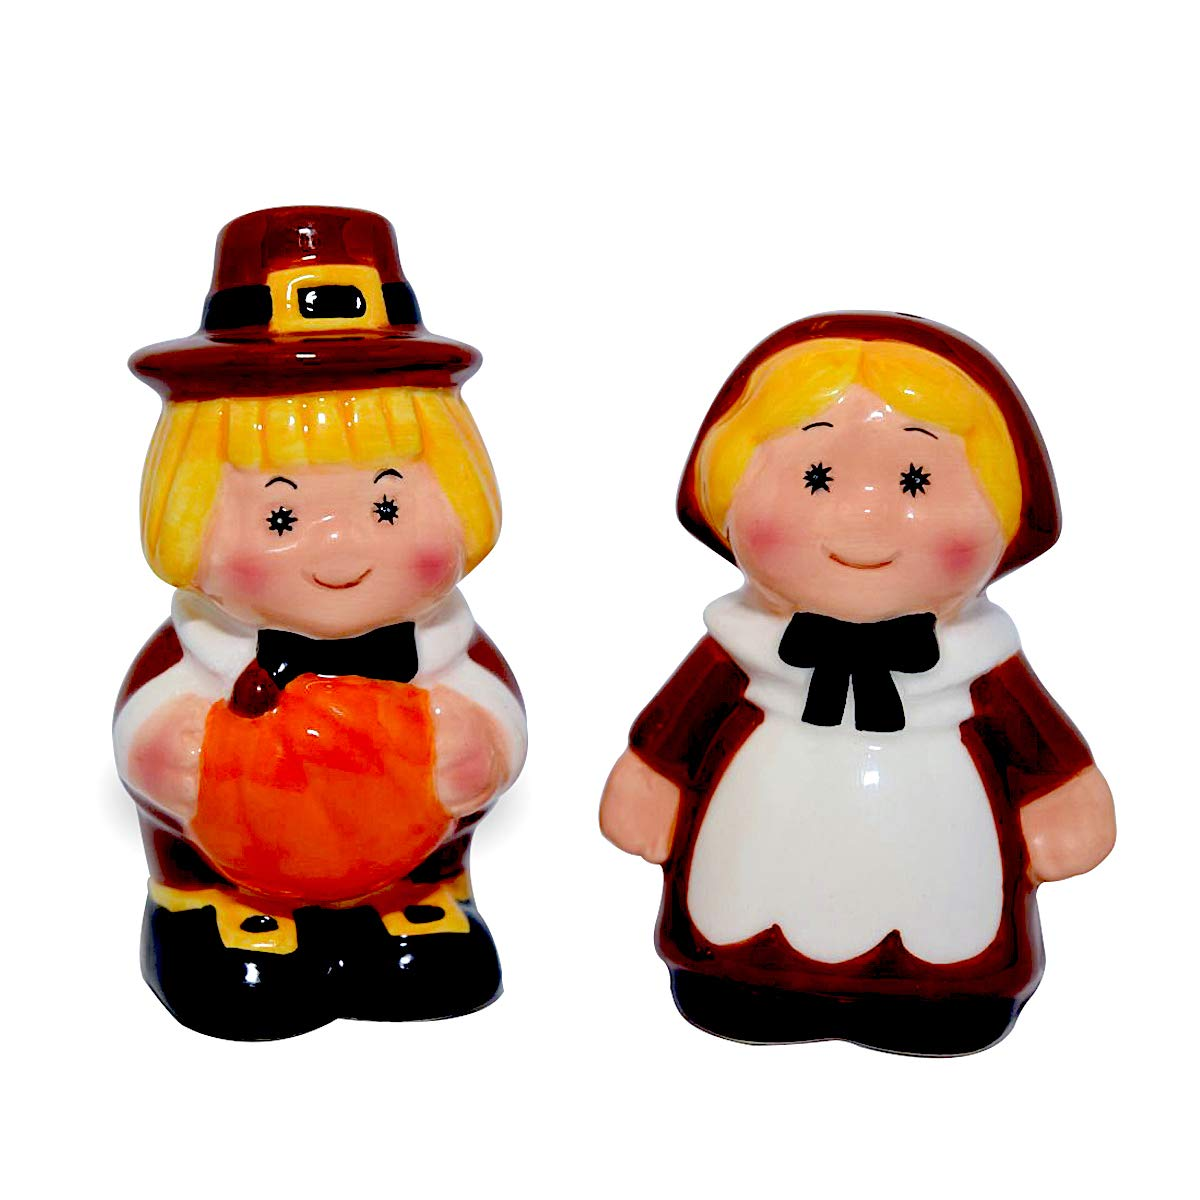 Thanksgiving Salt and Pepper Shakers, Pilgrim Couple Holiday Ceramic Set, Thanksgiving Decor, Barclay's Buys Barclay's Buys